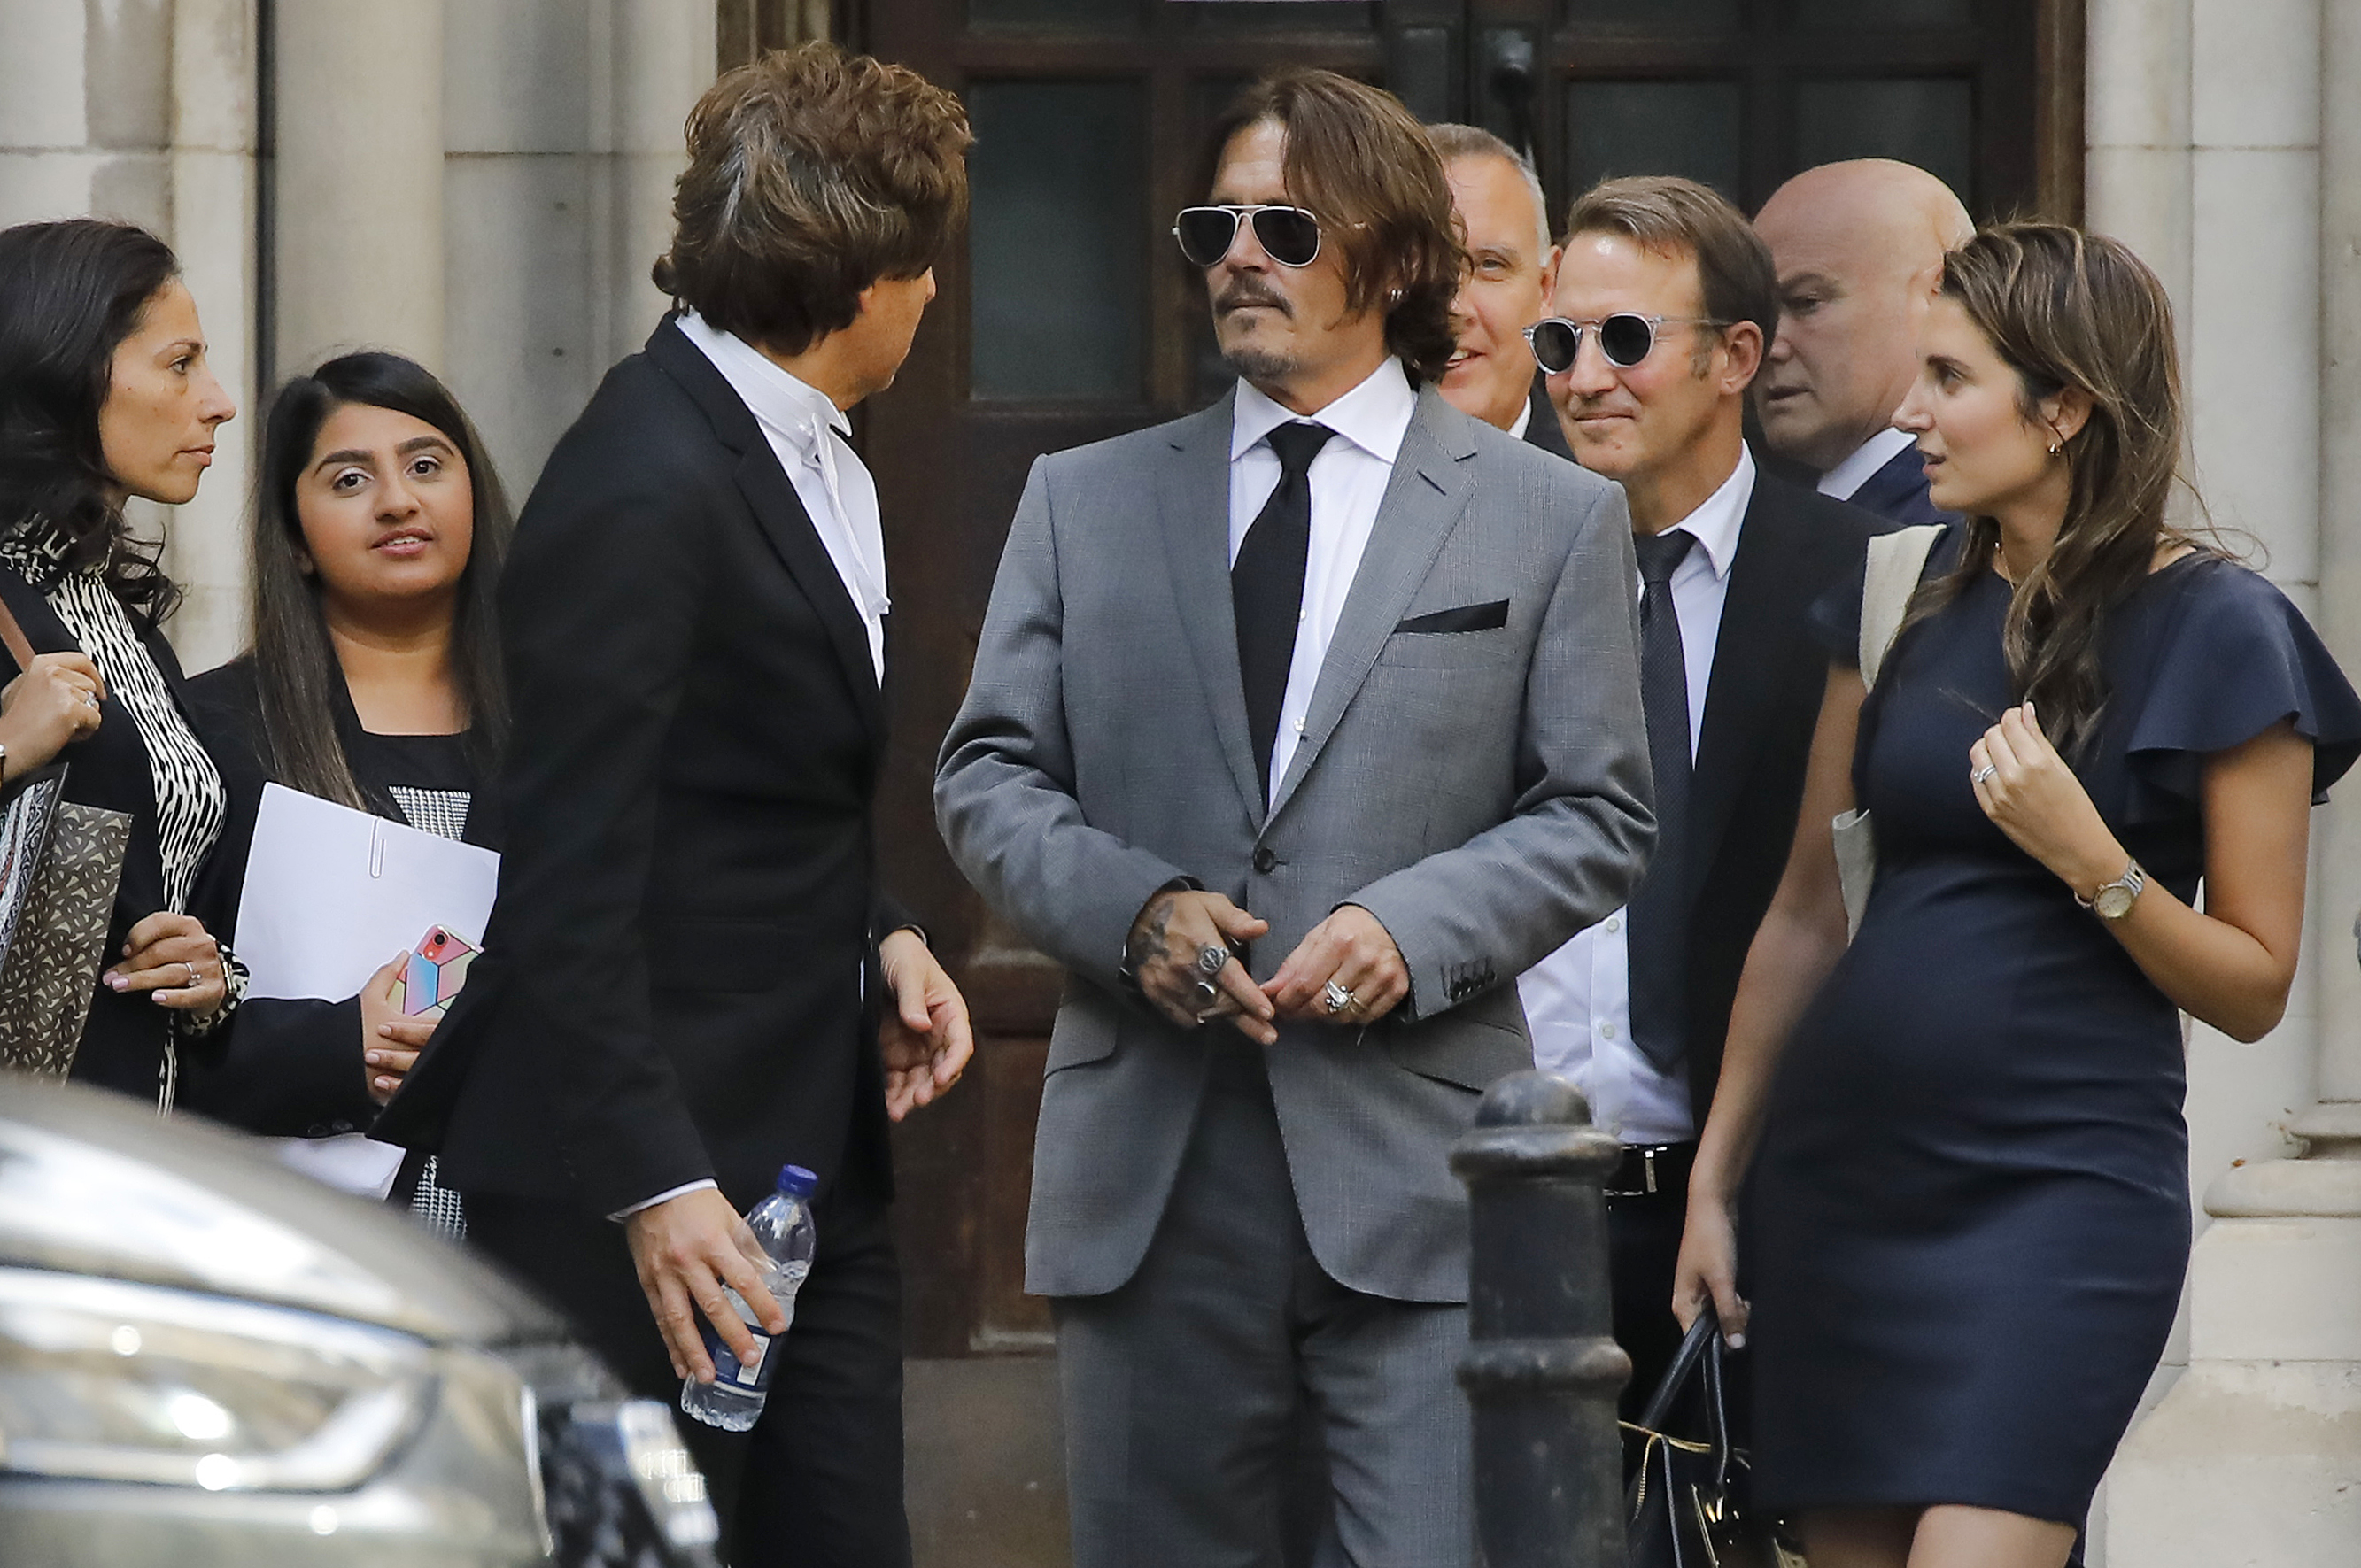 """US actor Johnny Depp (C) leaves after the fifth day of his libel trial against News Group Newspapers (NGN), at the High Court in London, on July 13, 2020. - Depp is suing the publishers of The Sun and the author of the article for the claims that called him a """"wife-beater"""" in April 2018. (Photo by Tolga AKMEN / AFP) (Photo by TOLGA AKMEN/AFP via Getty Images)"""